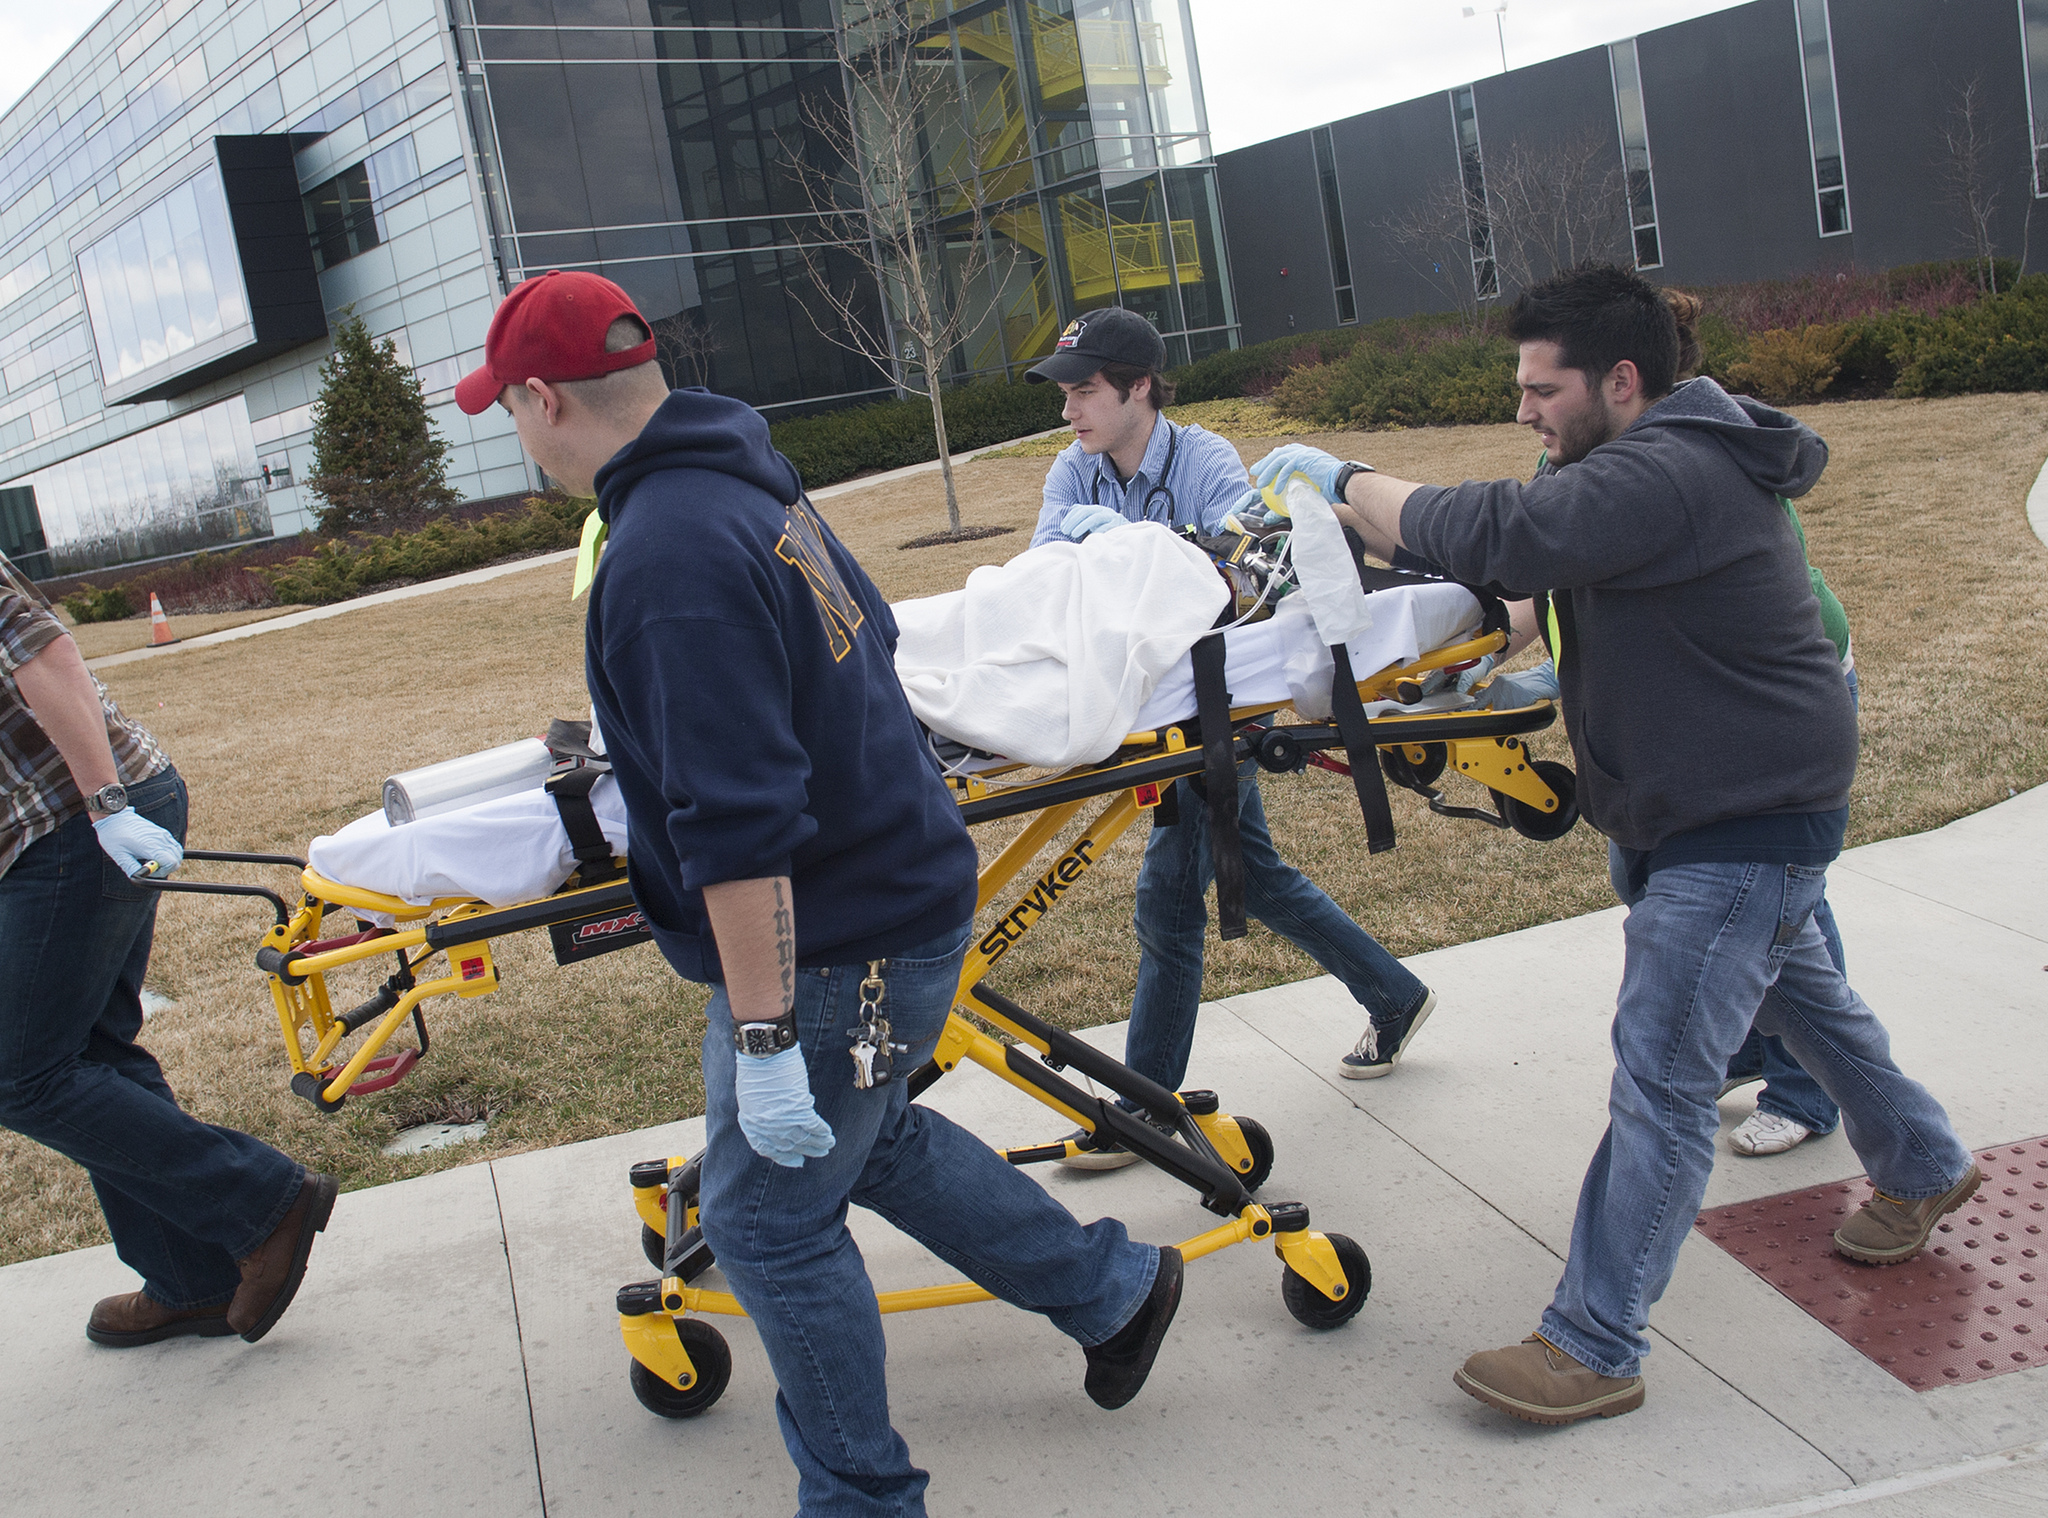 EMT/Nursing Pediatric Emergency Simulation - April 2013 4, COD Newsroom April 8, 2013